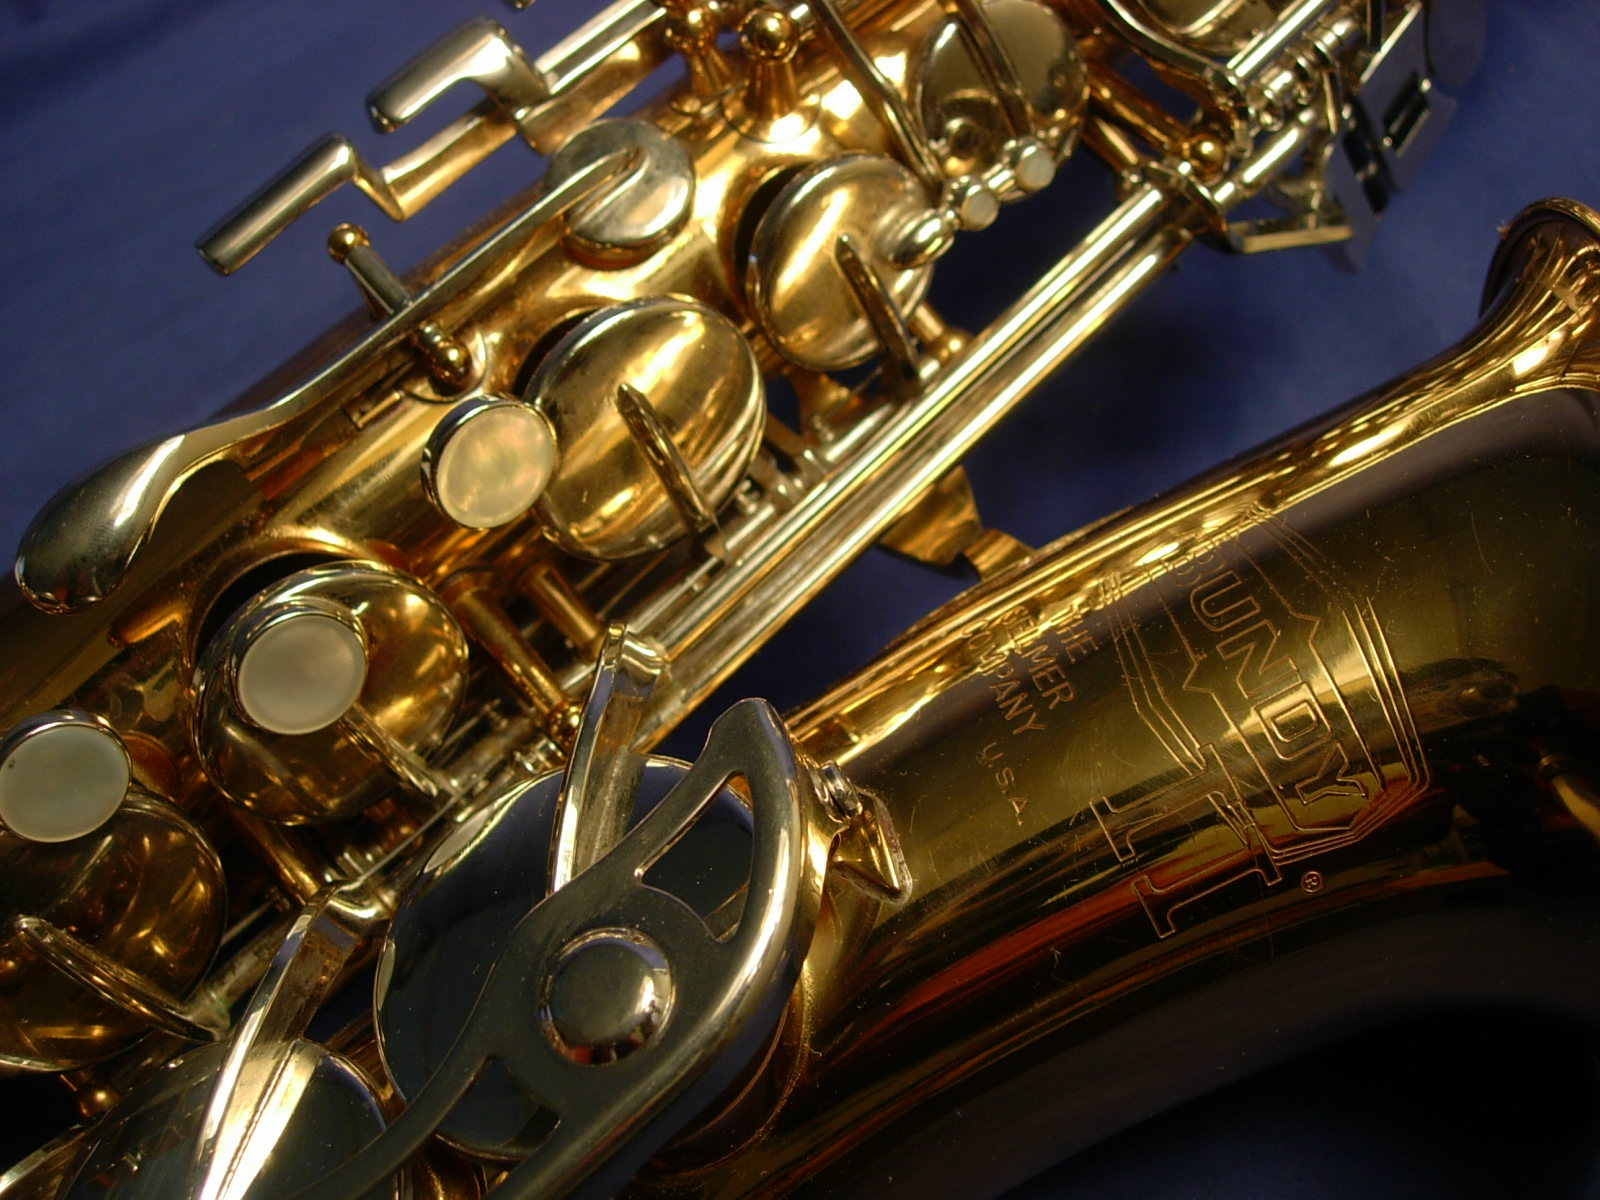 Alto Saxophone Wallpaper Bundy ii alto sax 1600x1200